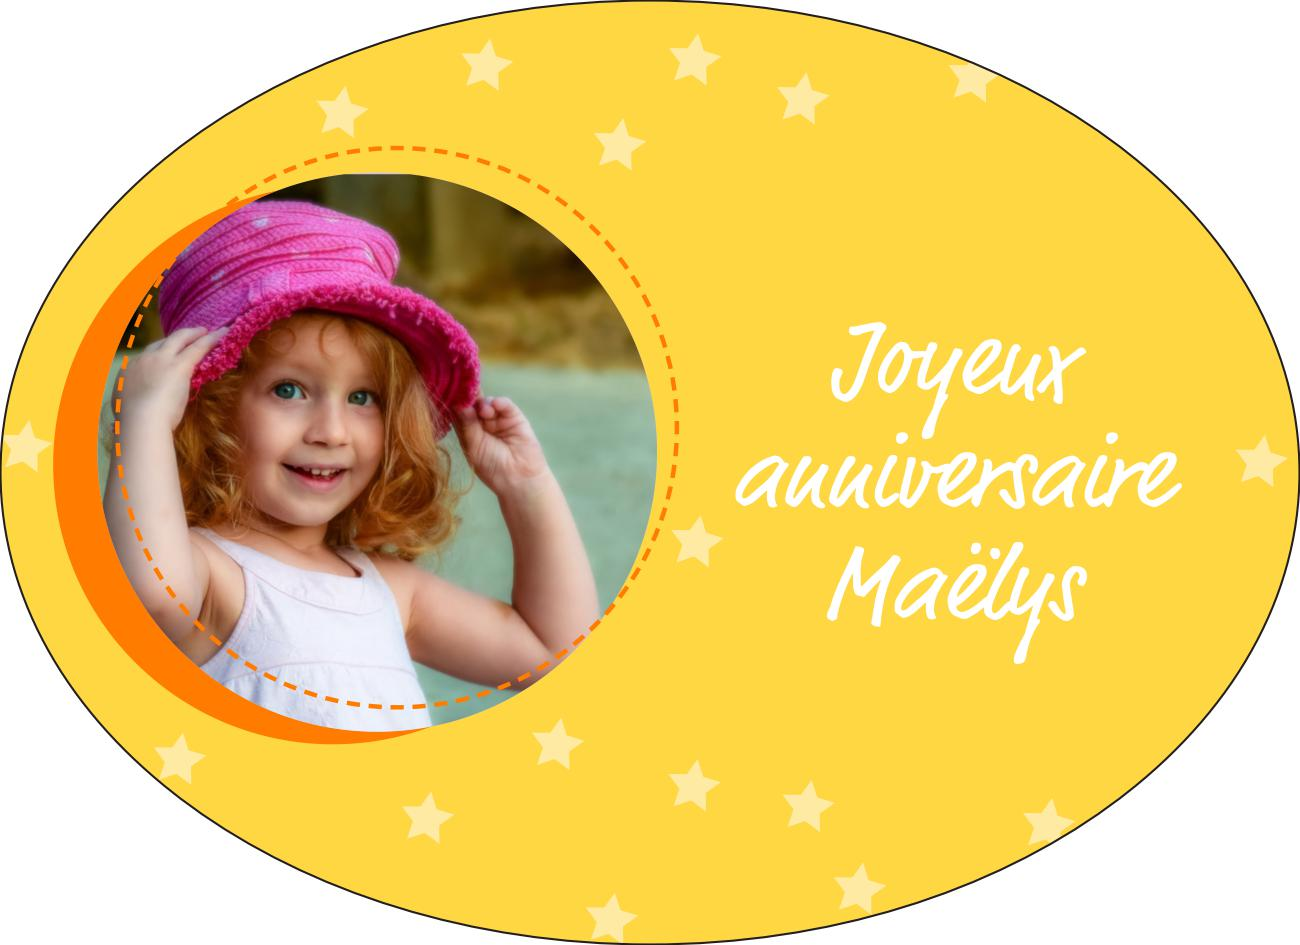 birthday-children-maelys_has-image